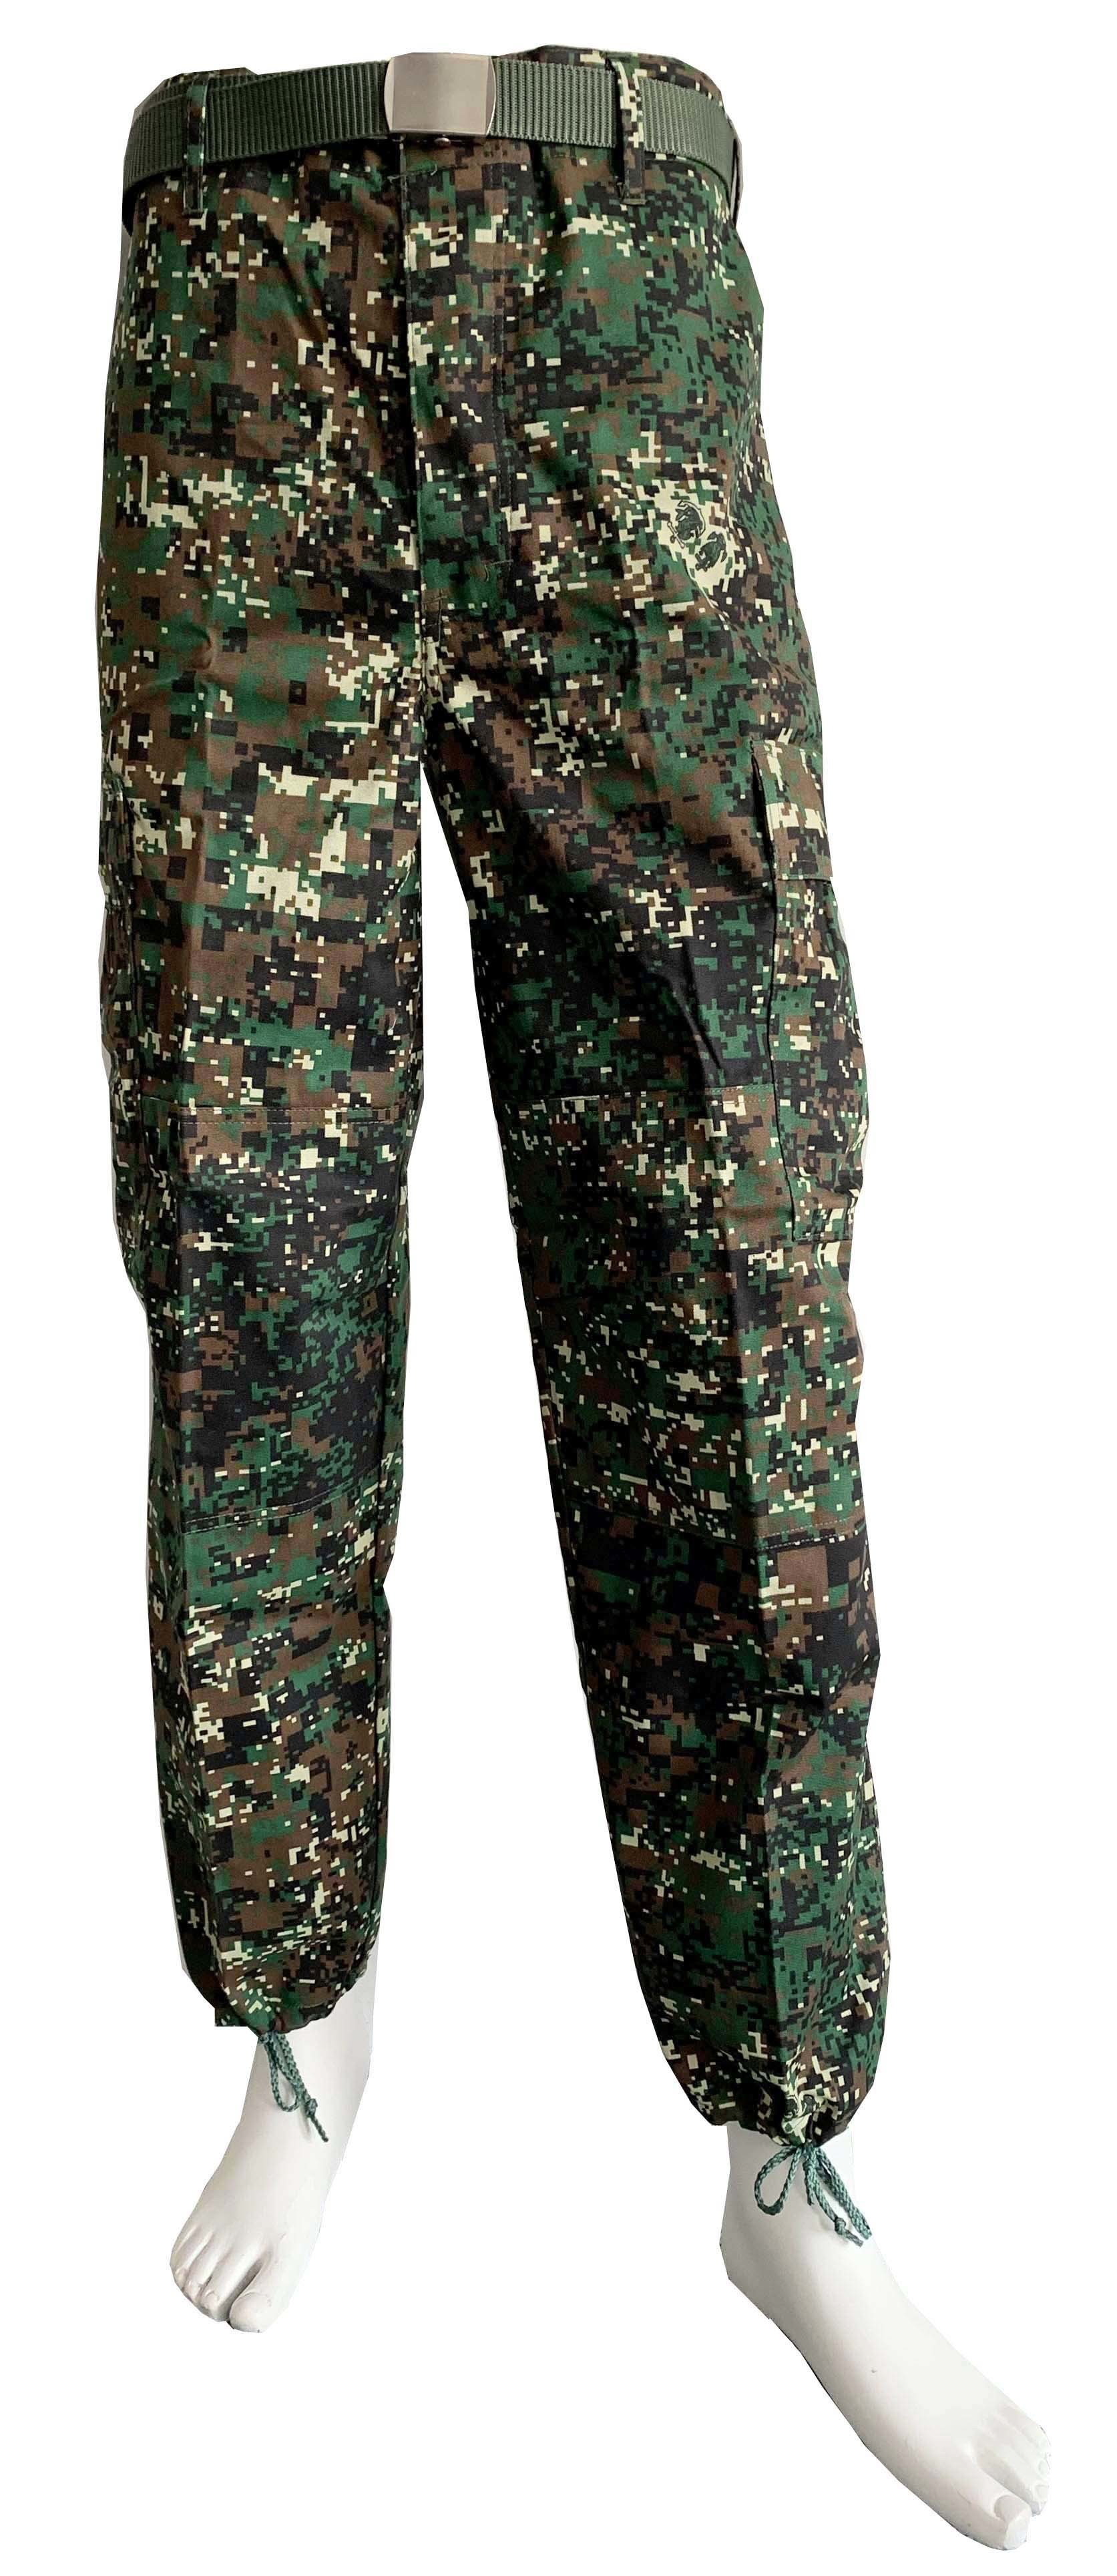 Philippines Army Marine Digital Camouflage Military Uniform